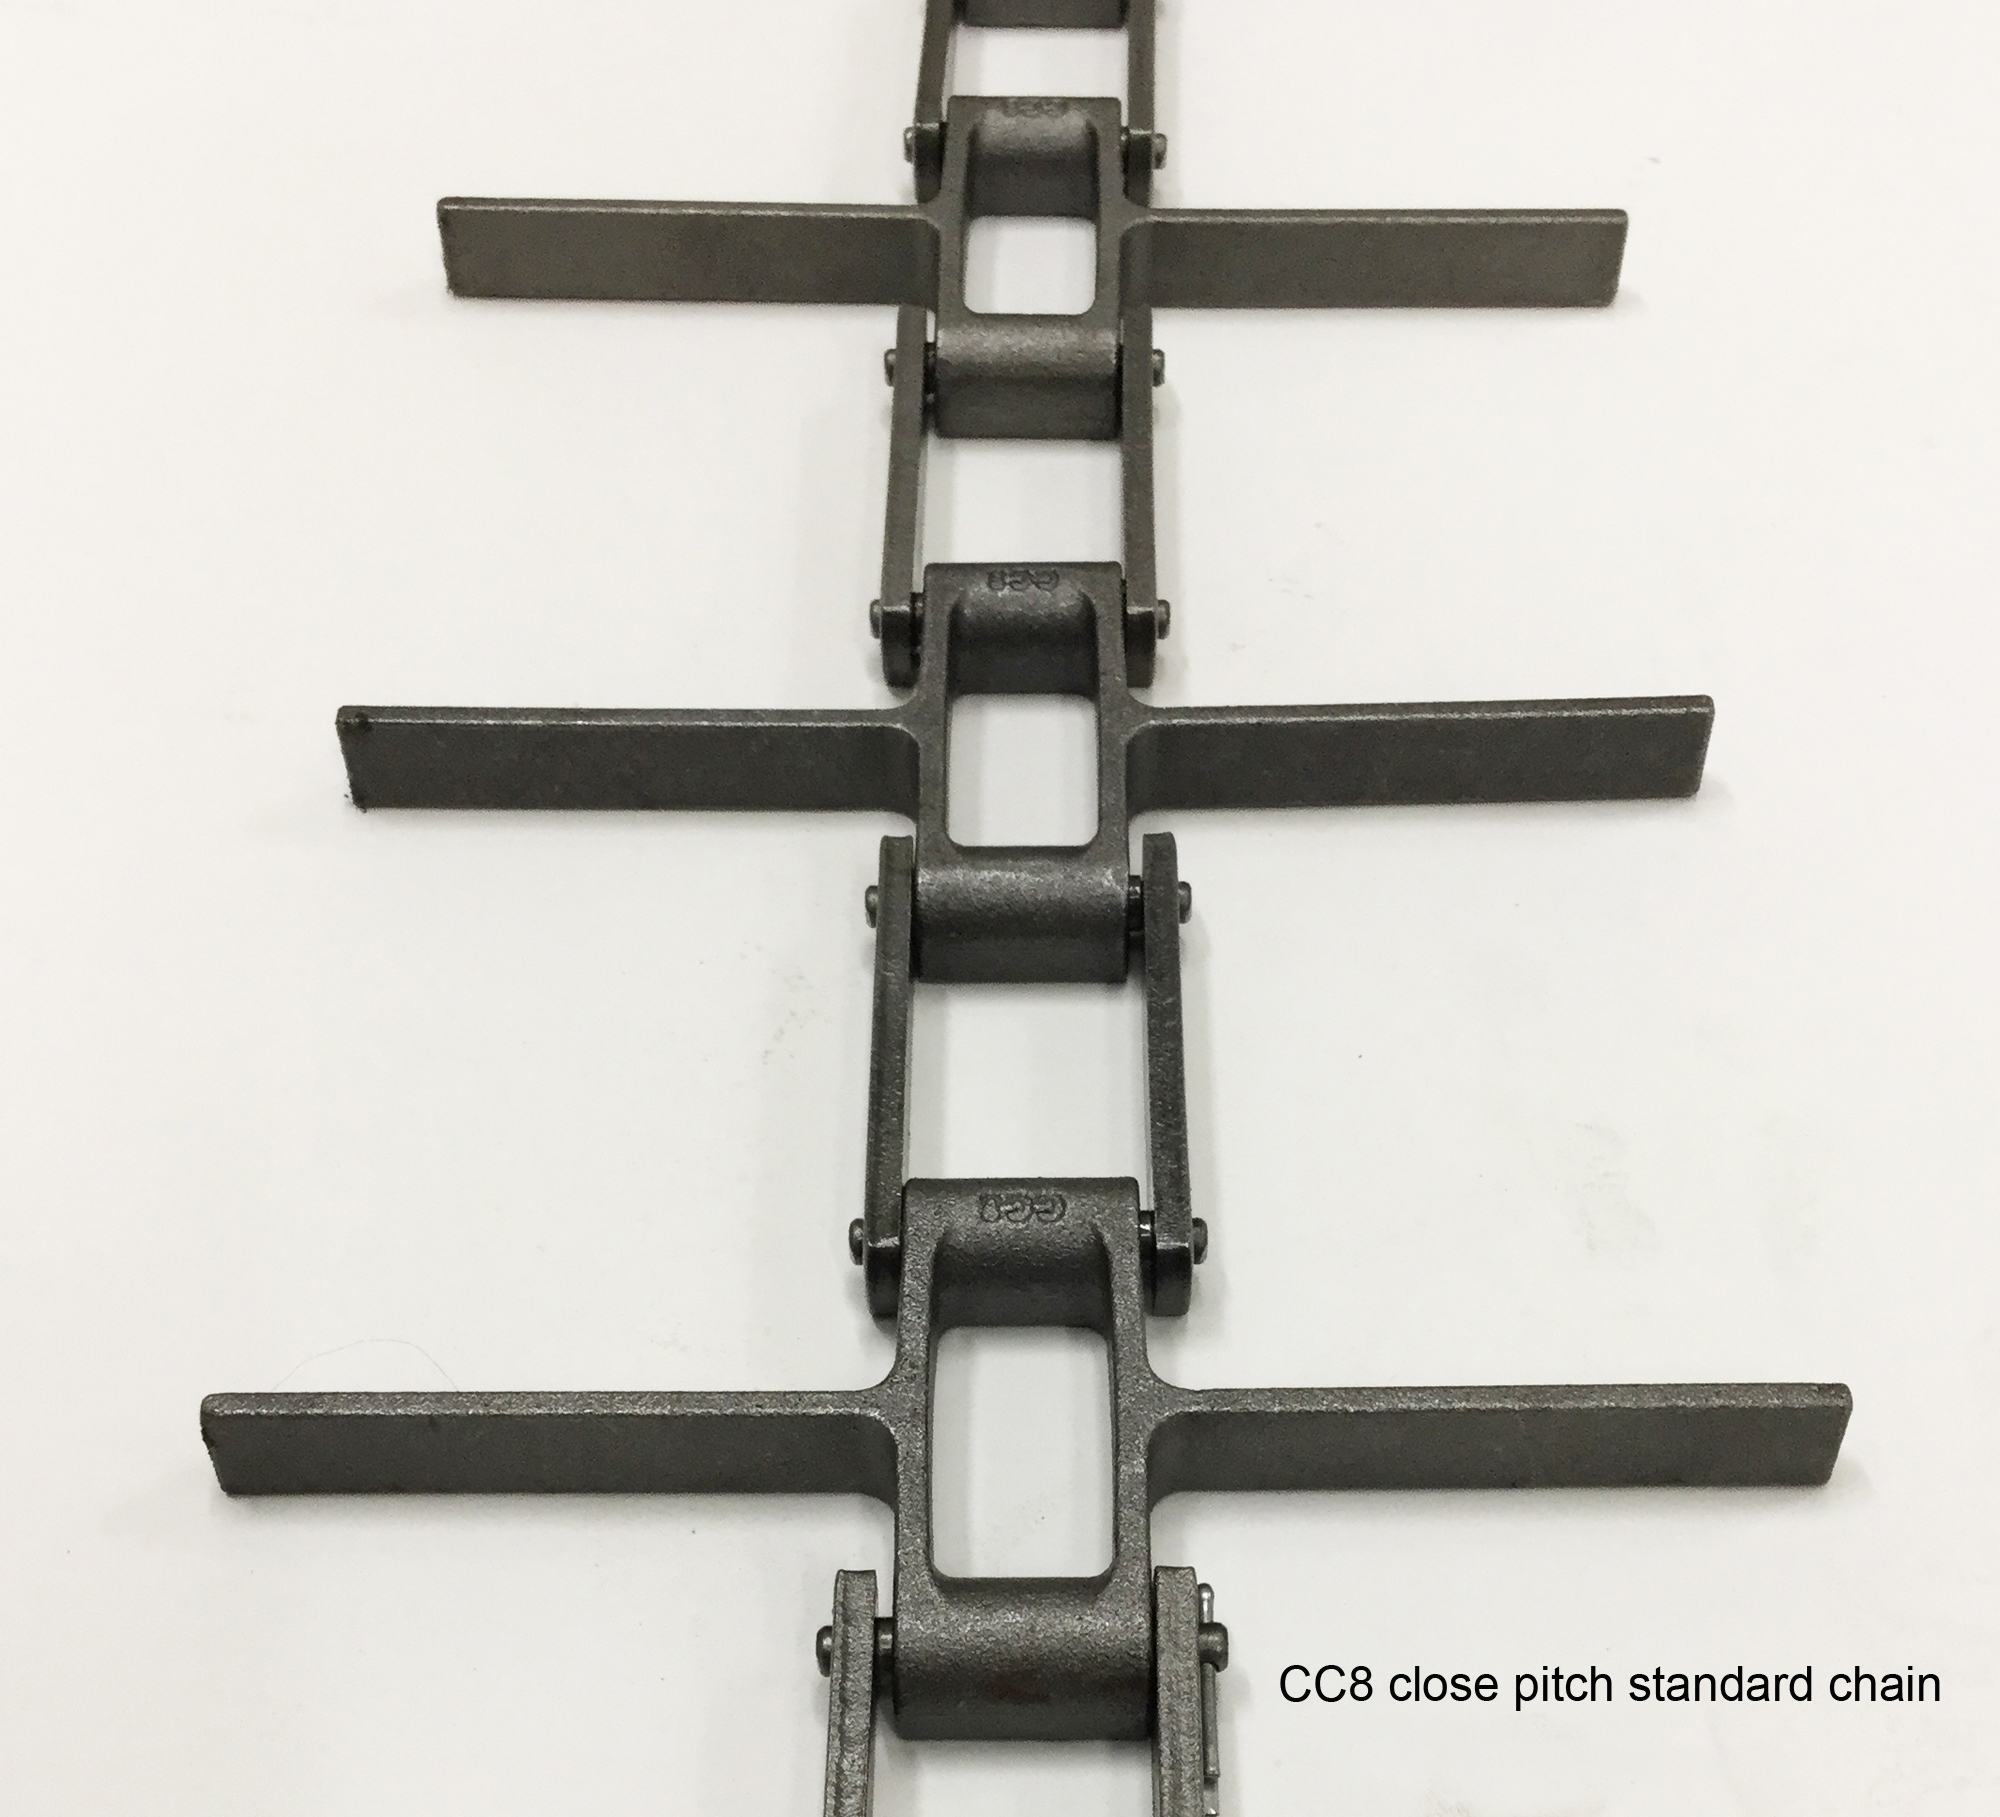 CC8 close pitch standard chain